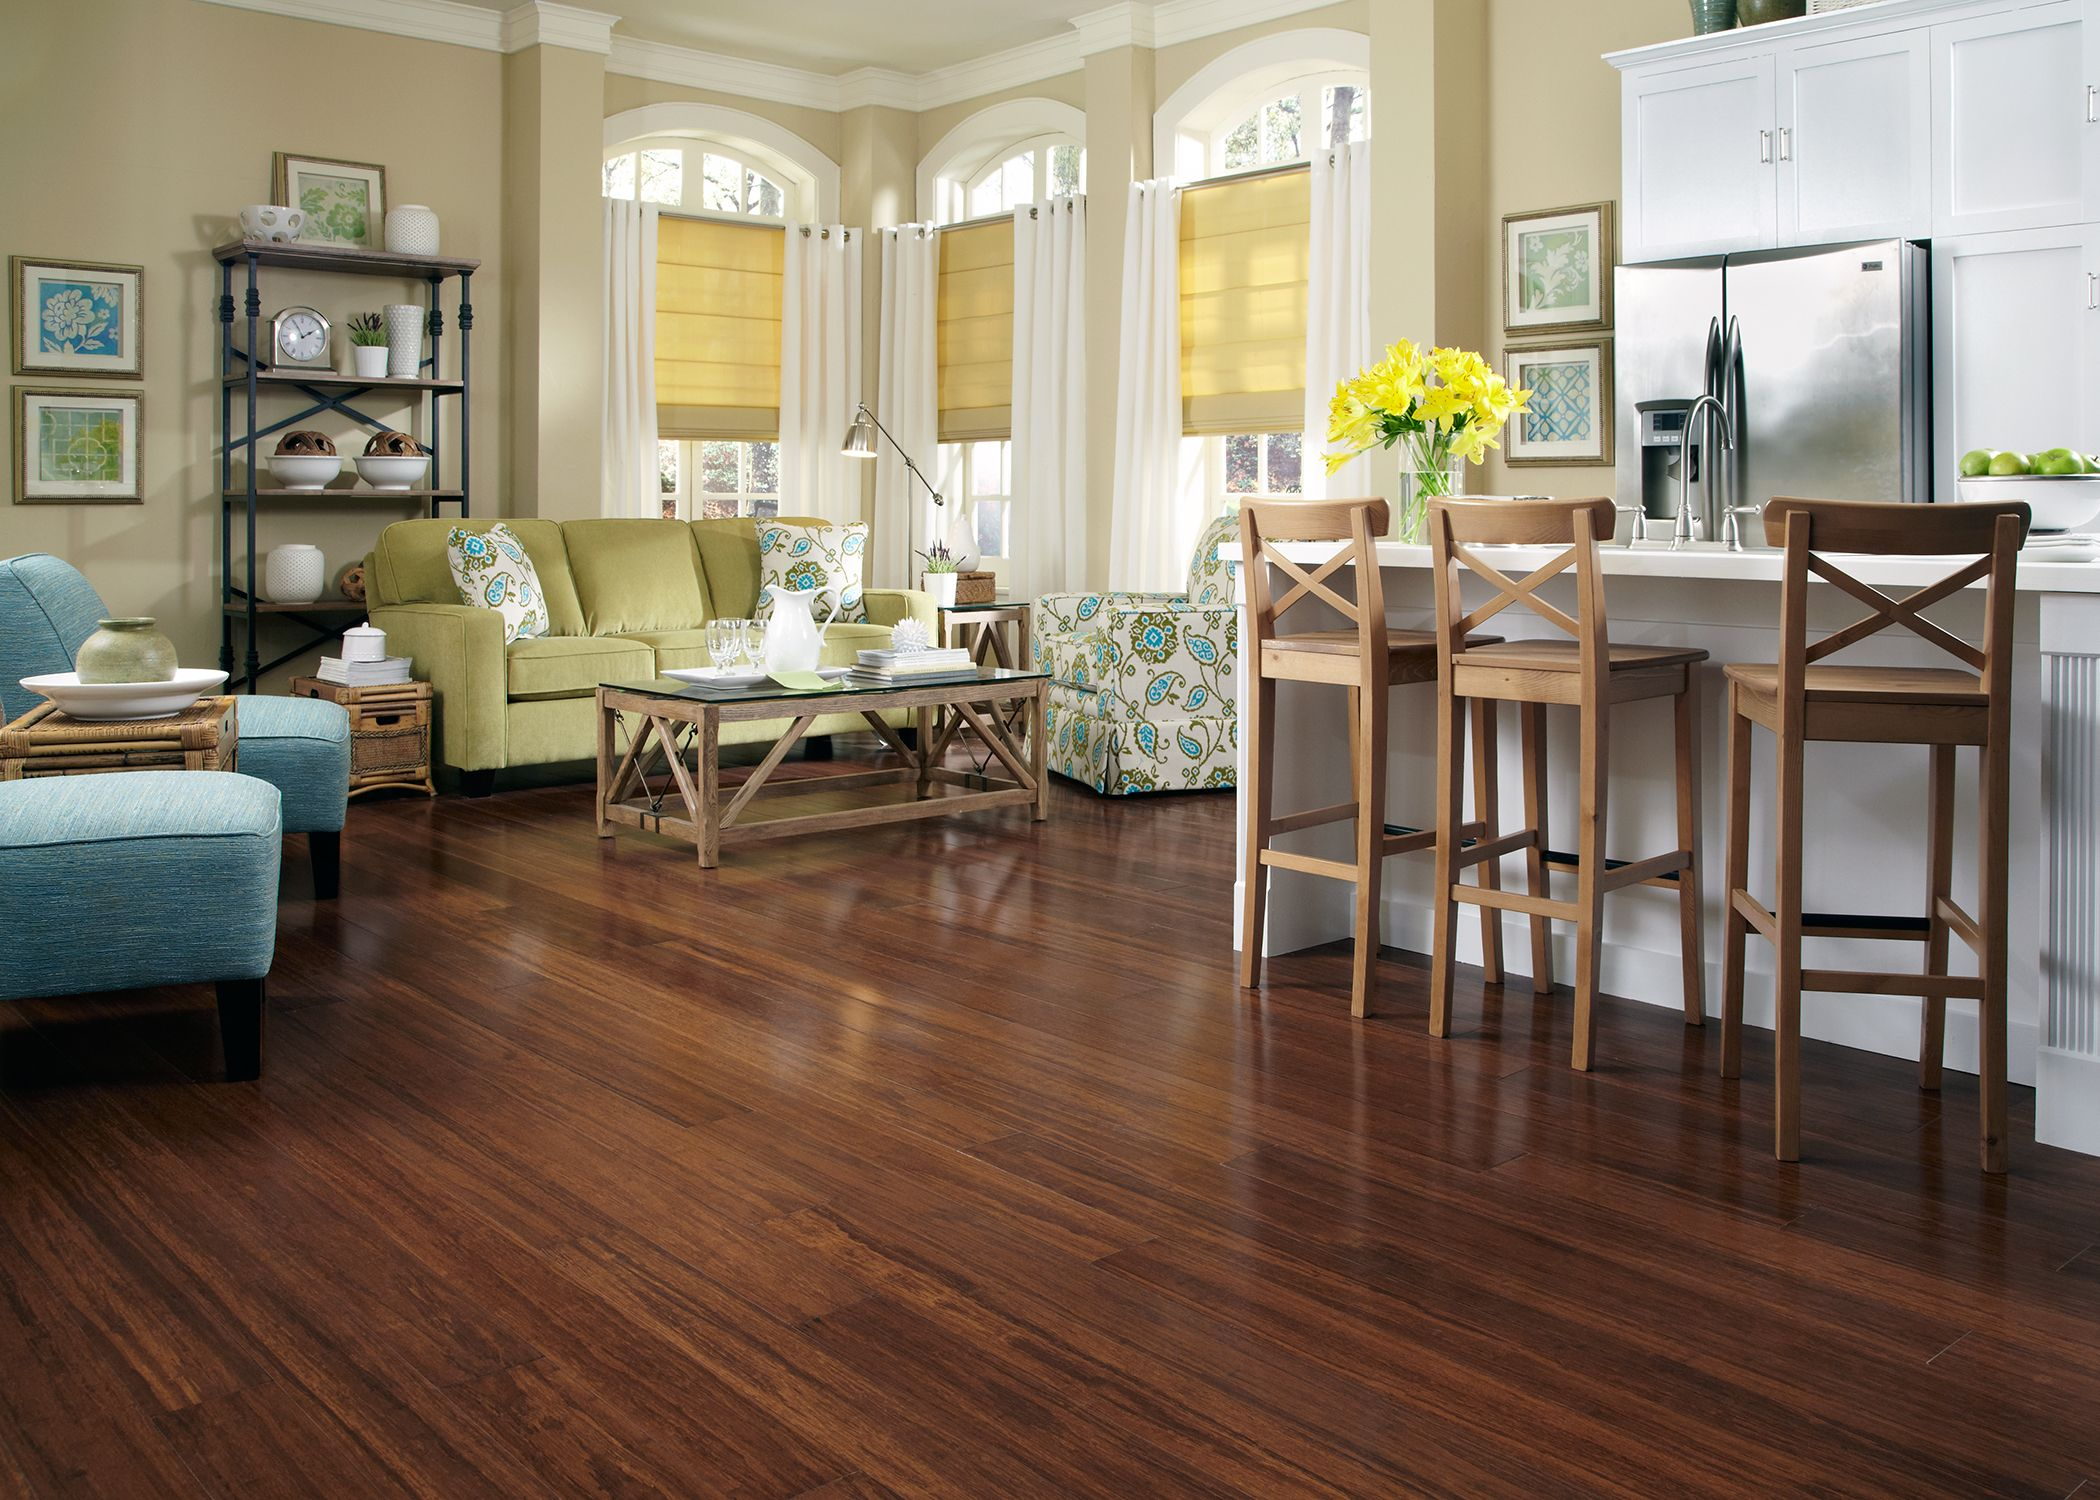 Bellawood Bamboo Flooring Is A Beautiful And Earth Friendly Way To